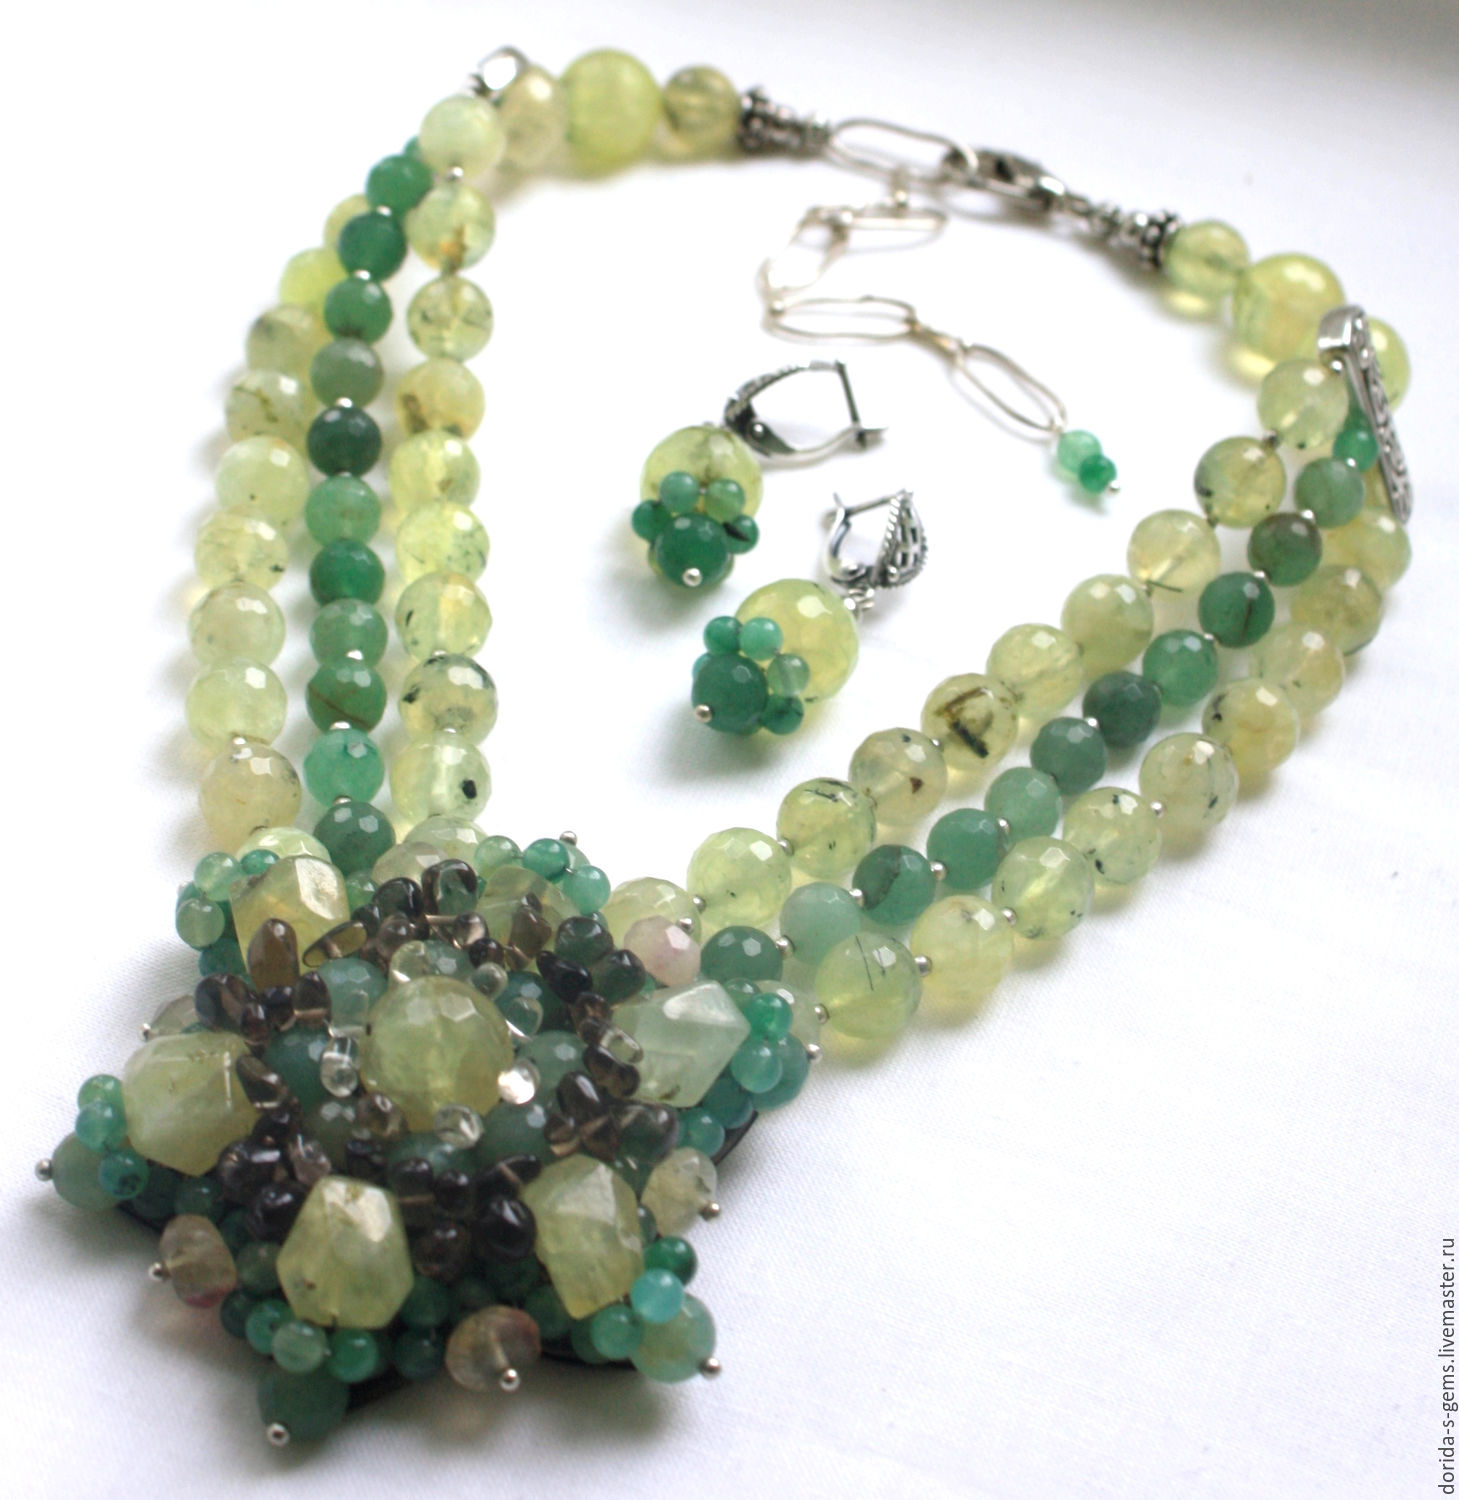 necklace, designer necklace, necklace, necklace on a every day necklace out, the necklace of prehnite necklace, prehnite necklace, with prehnite, necklace for gift, beads of prehnite beads, stones, be